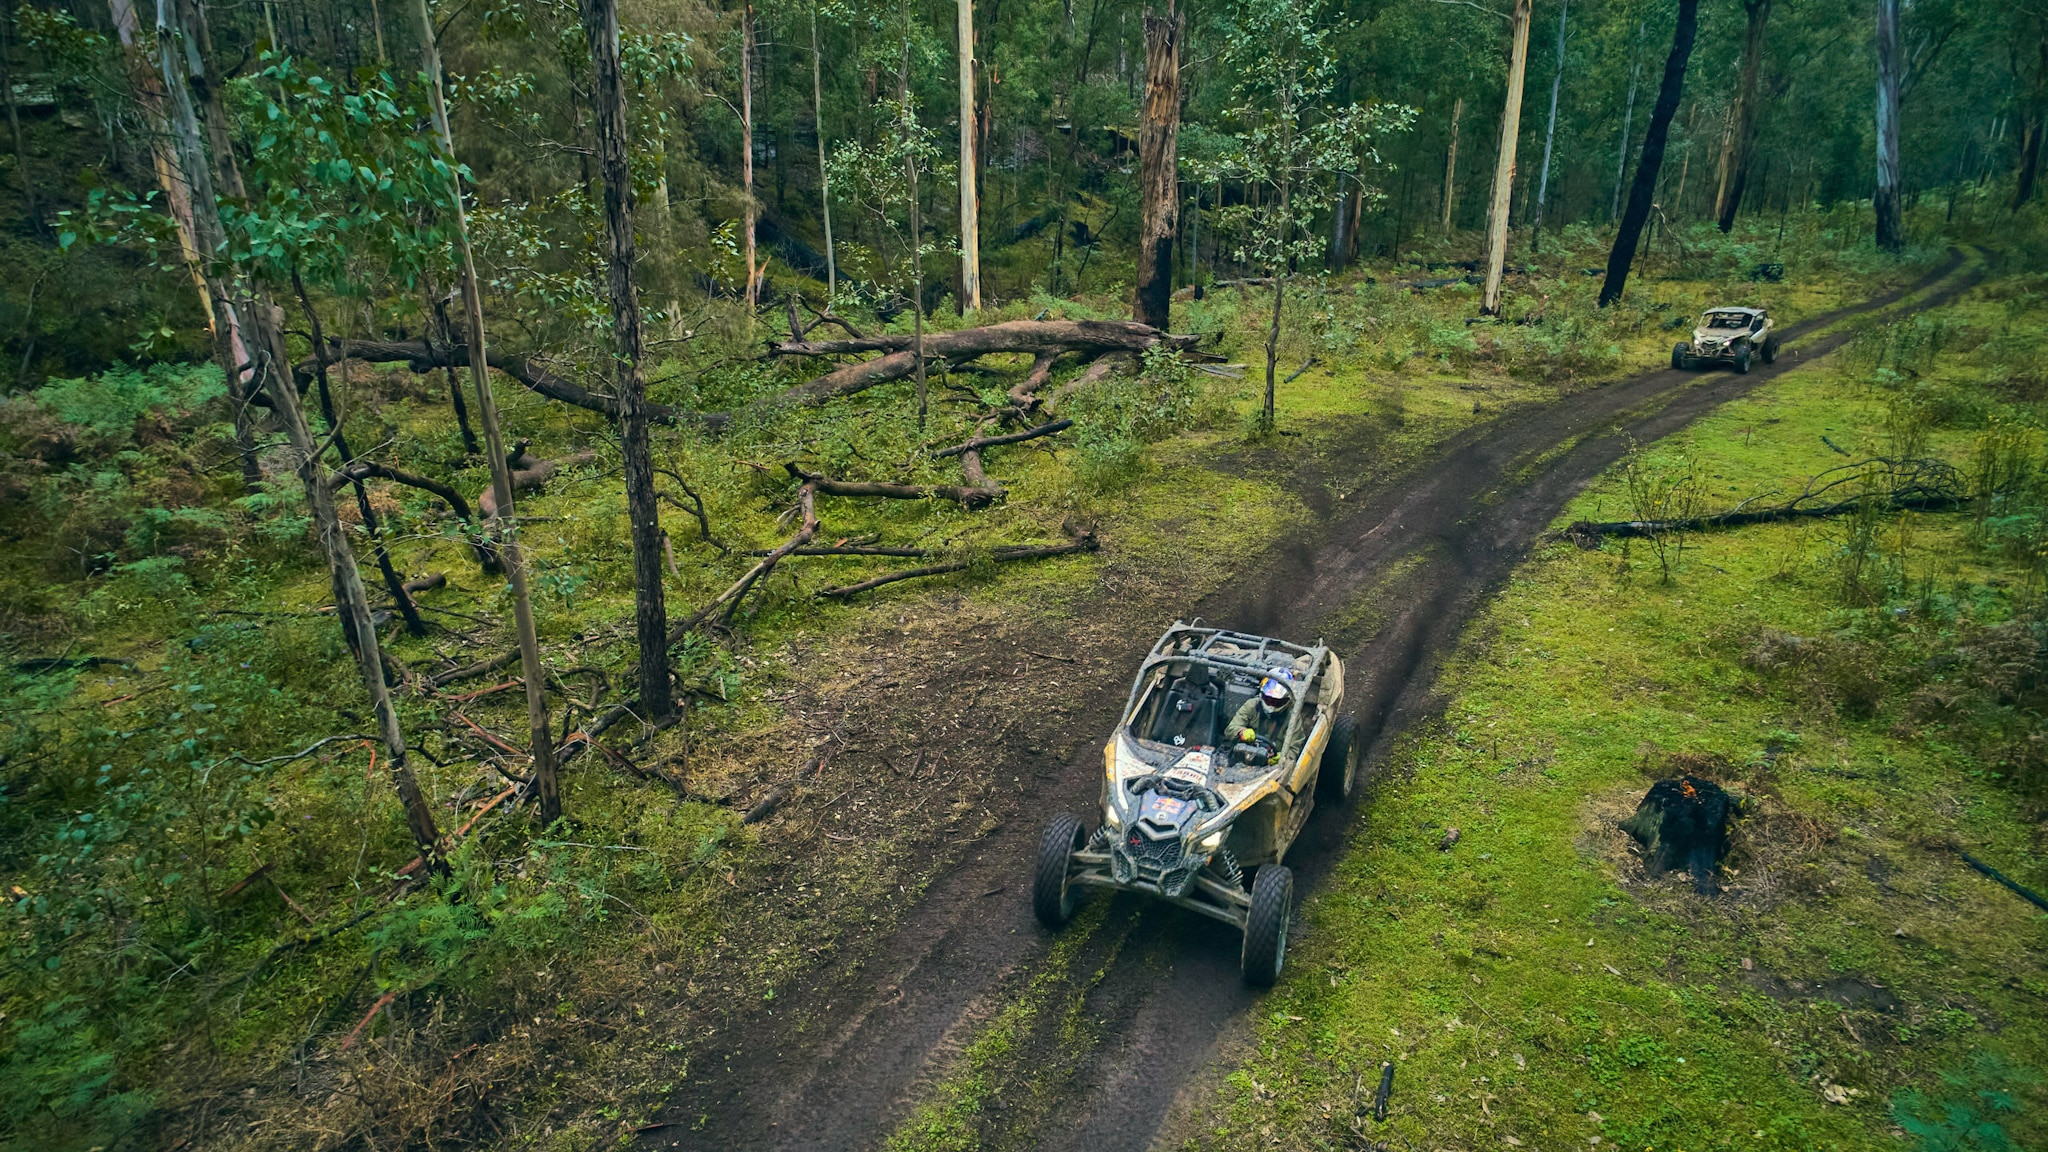 Two Can-Am Maverick X3 Riding Through a deep forest in Australia